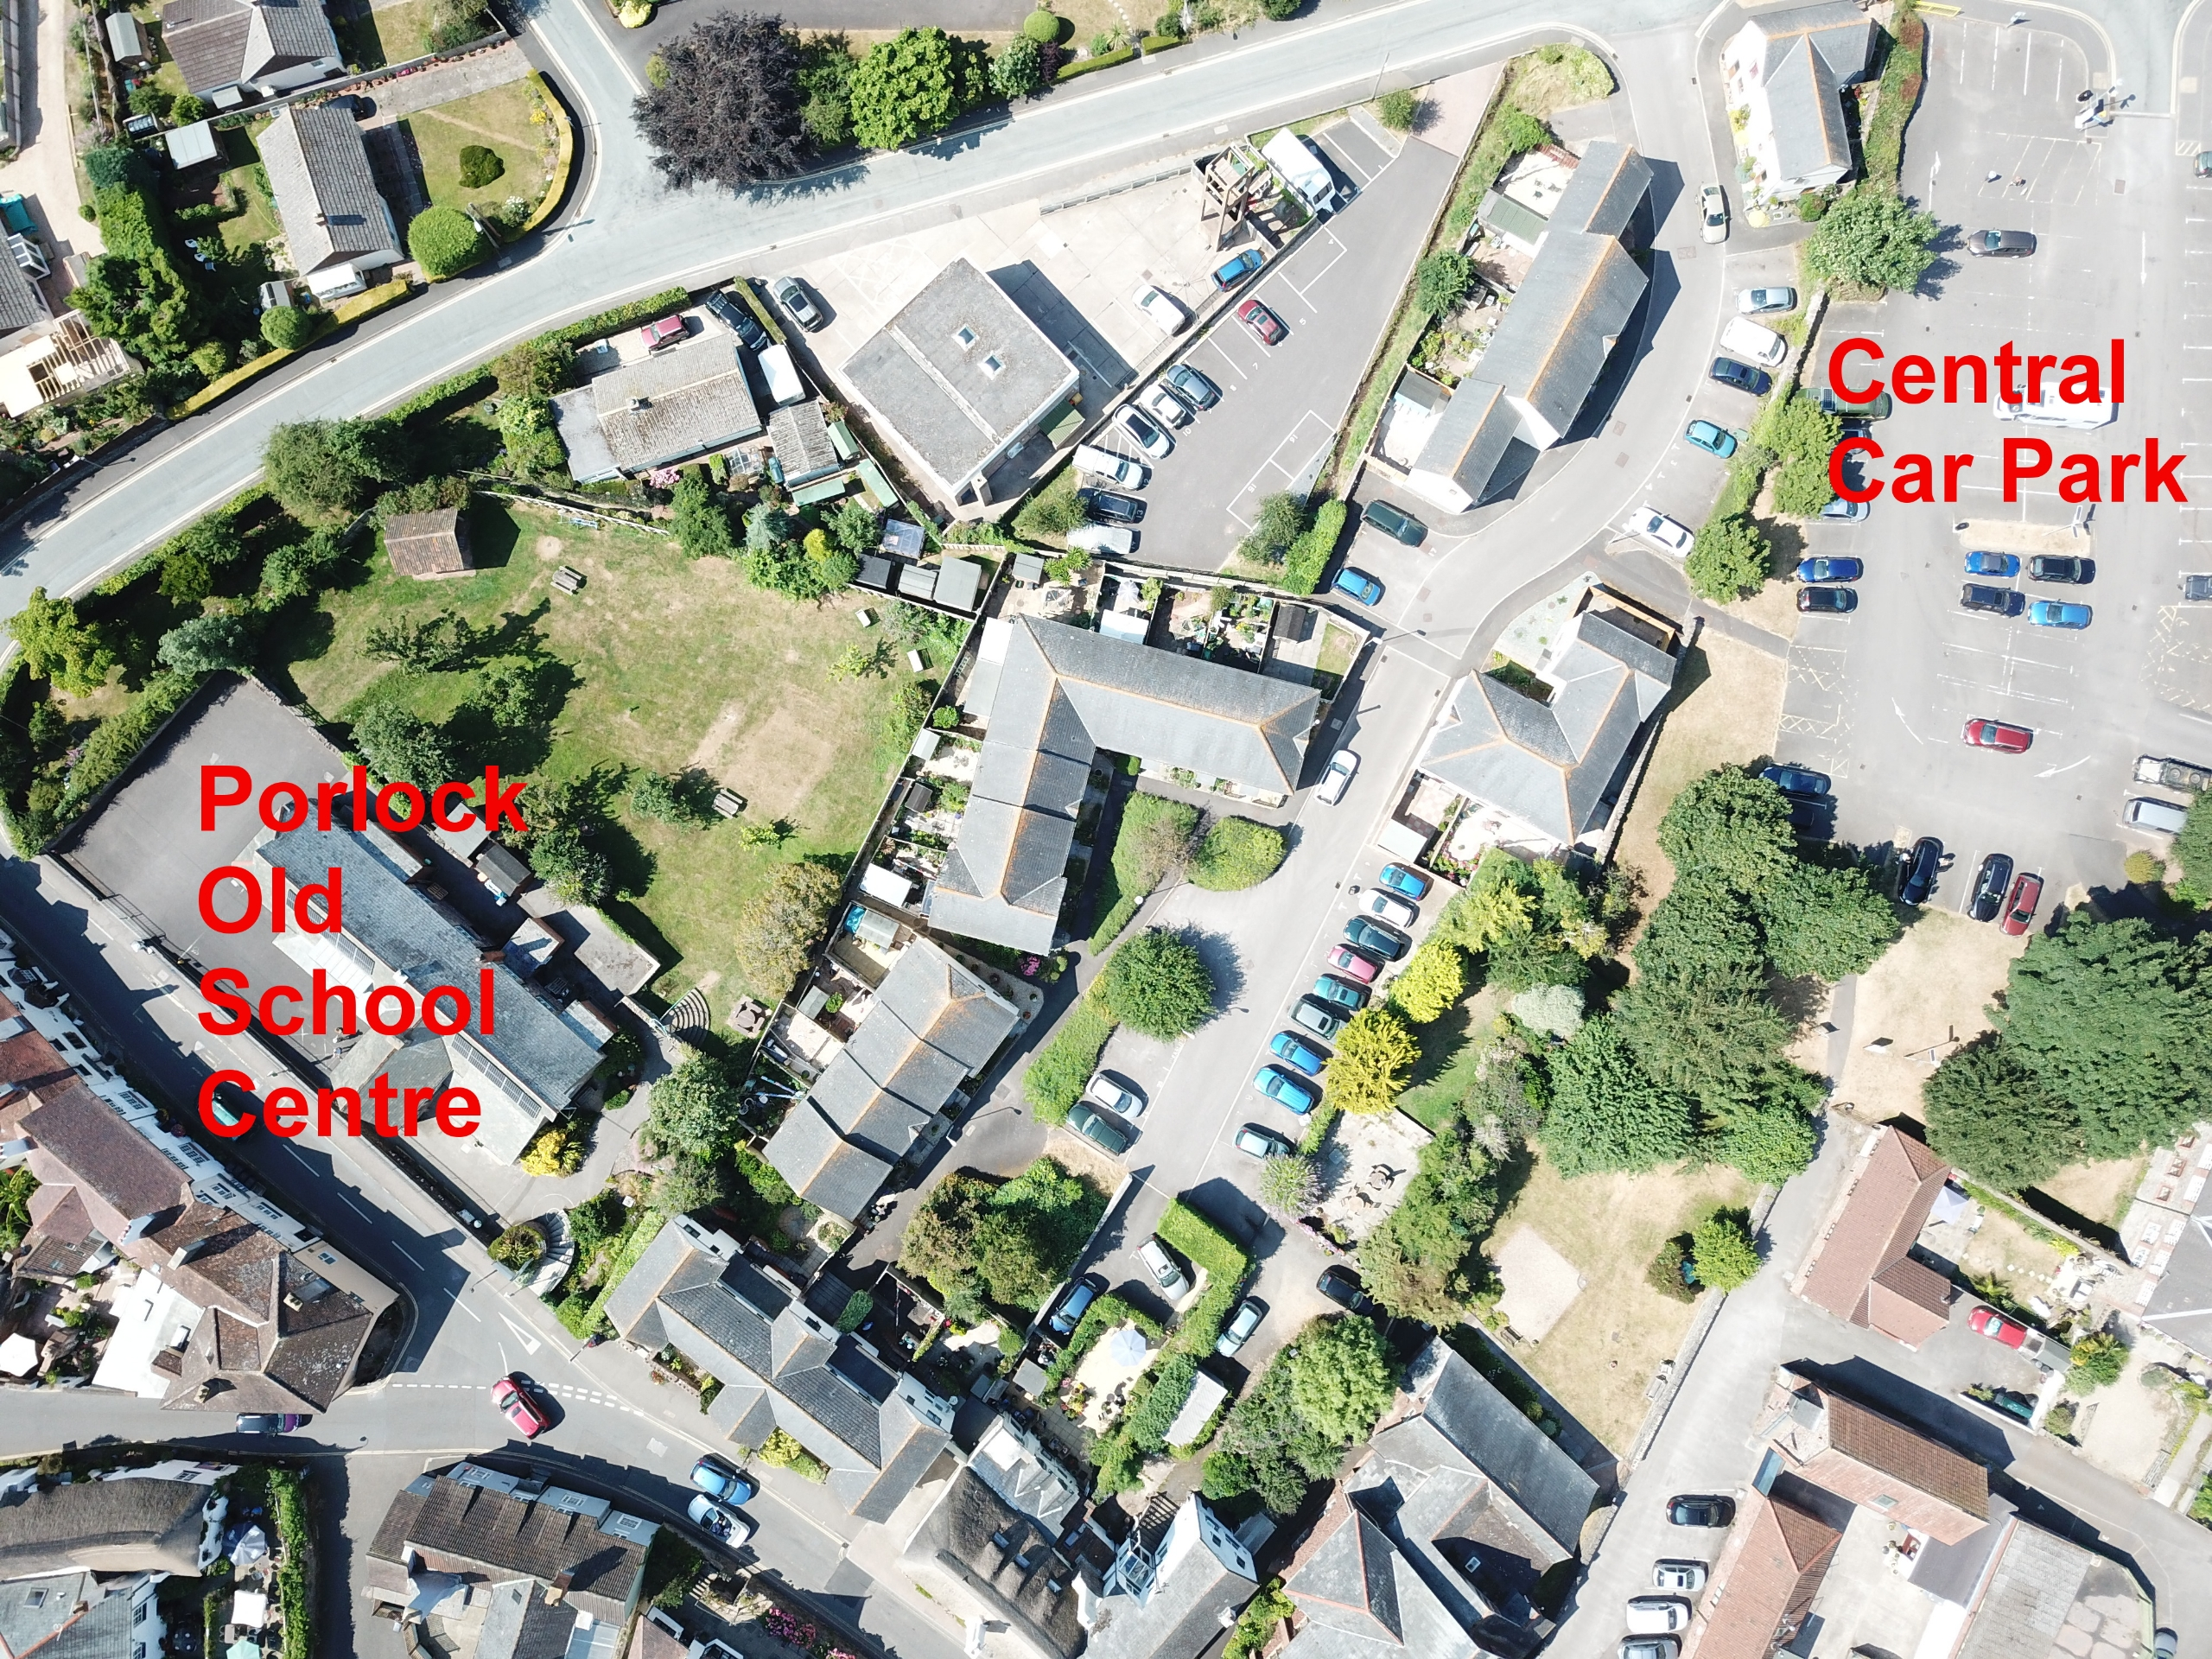 Overhead view of site and car park location